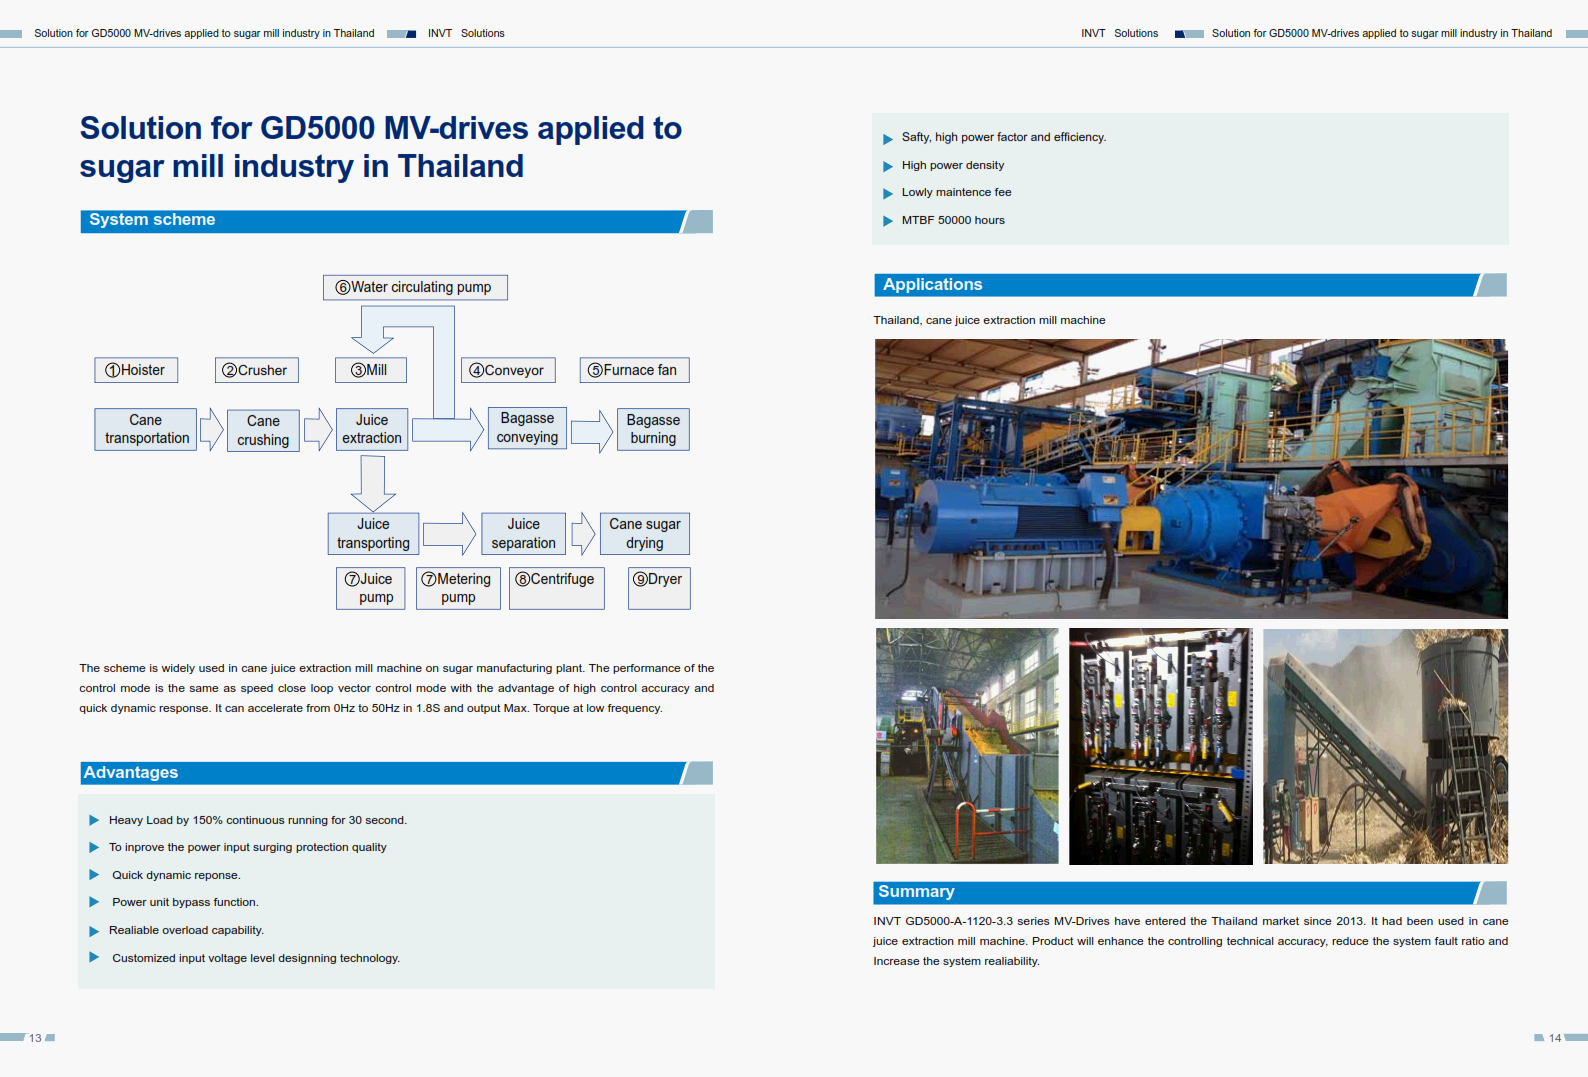 Solution for GD5000 MV-drives applied to sugar mill industry in Thailand